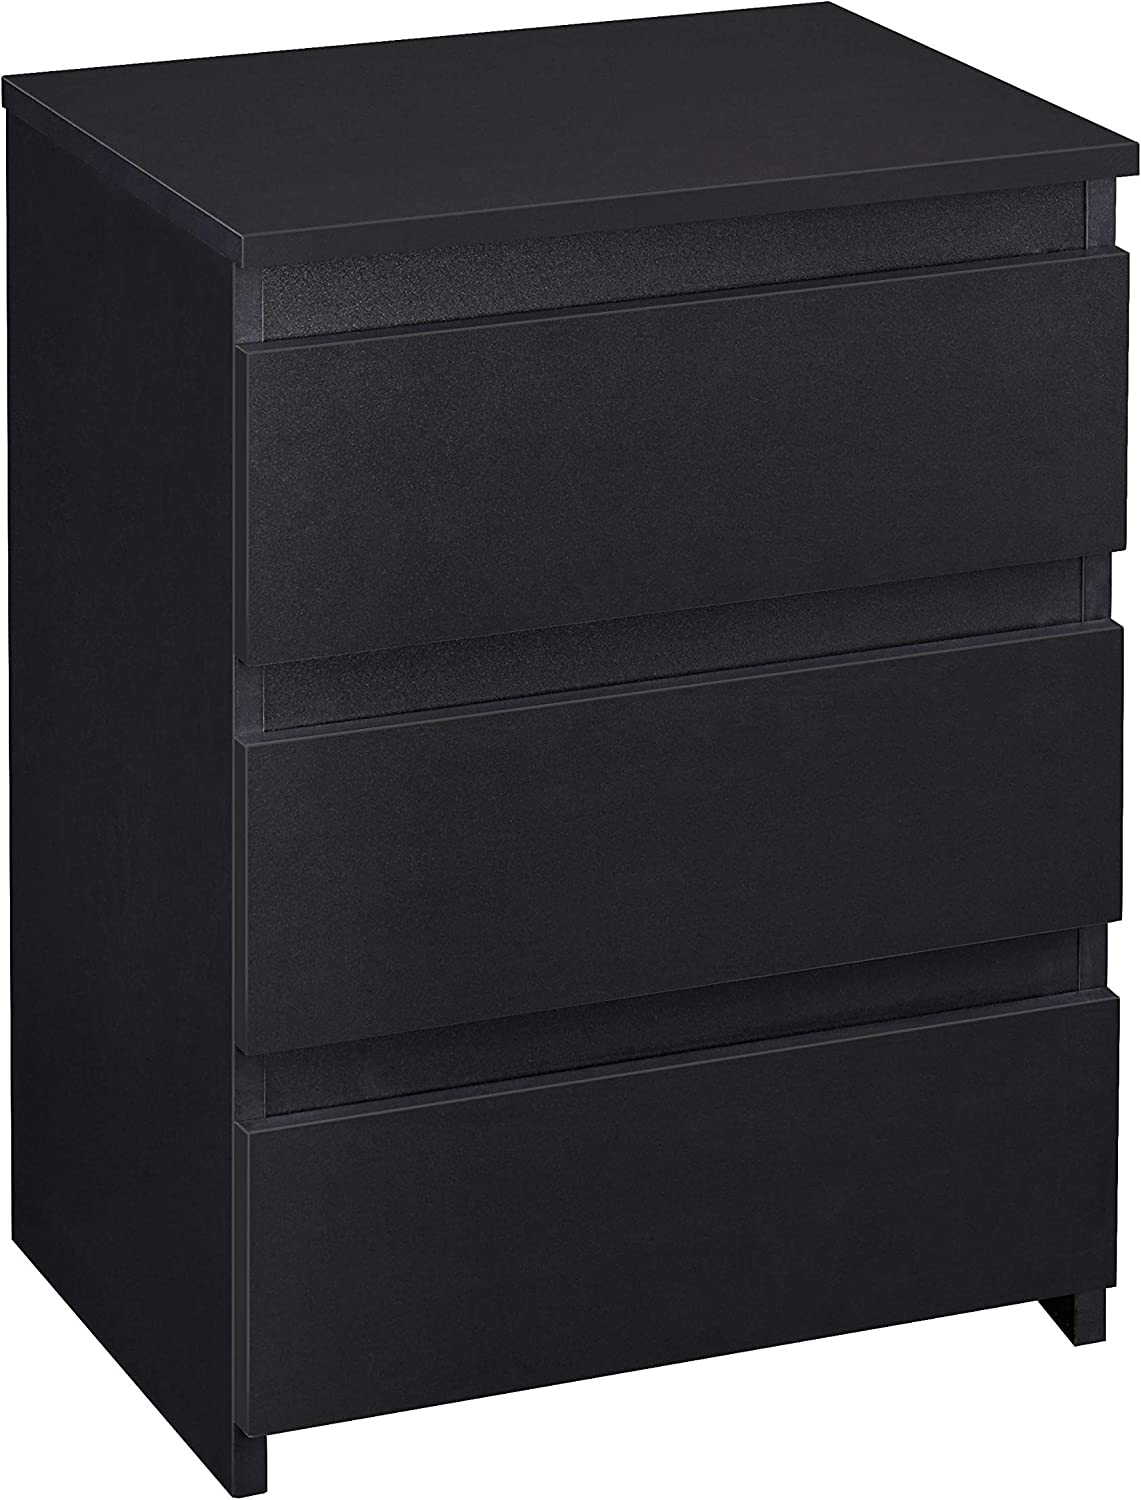 YAHEETECH Beside End Table Wood 3 Drawers Nightstand, Modern Small Nightstand with Drawers, Cabinet Storage for Bedroom